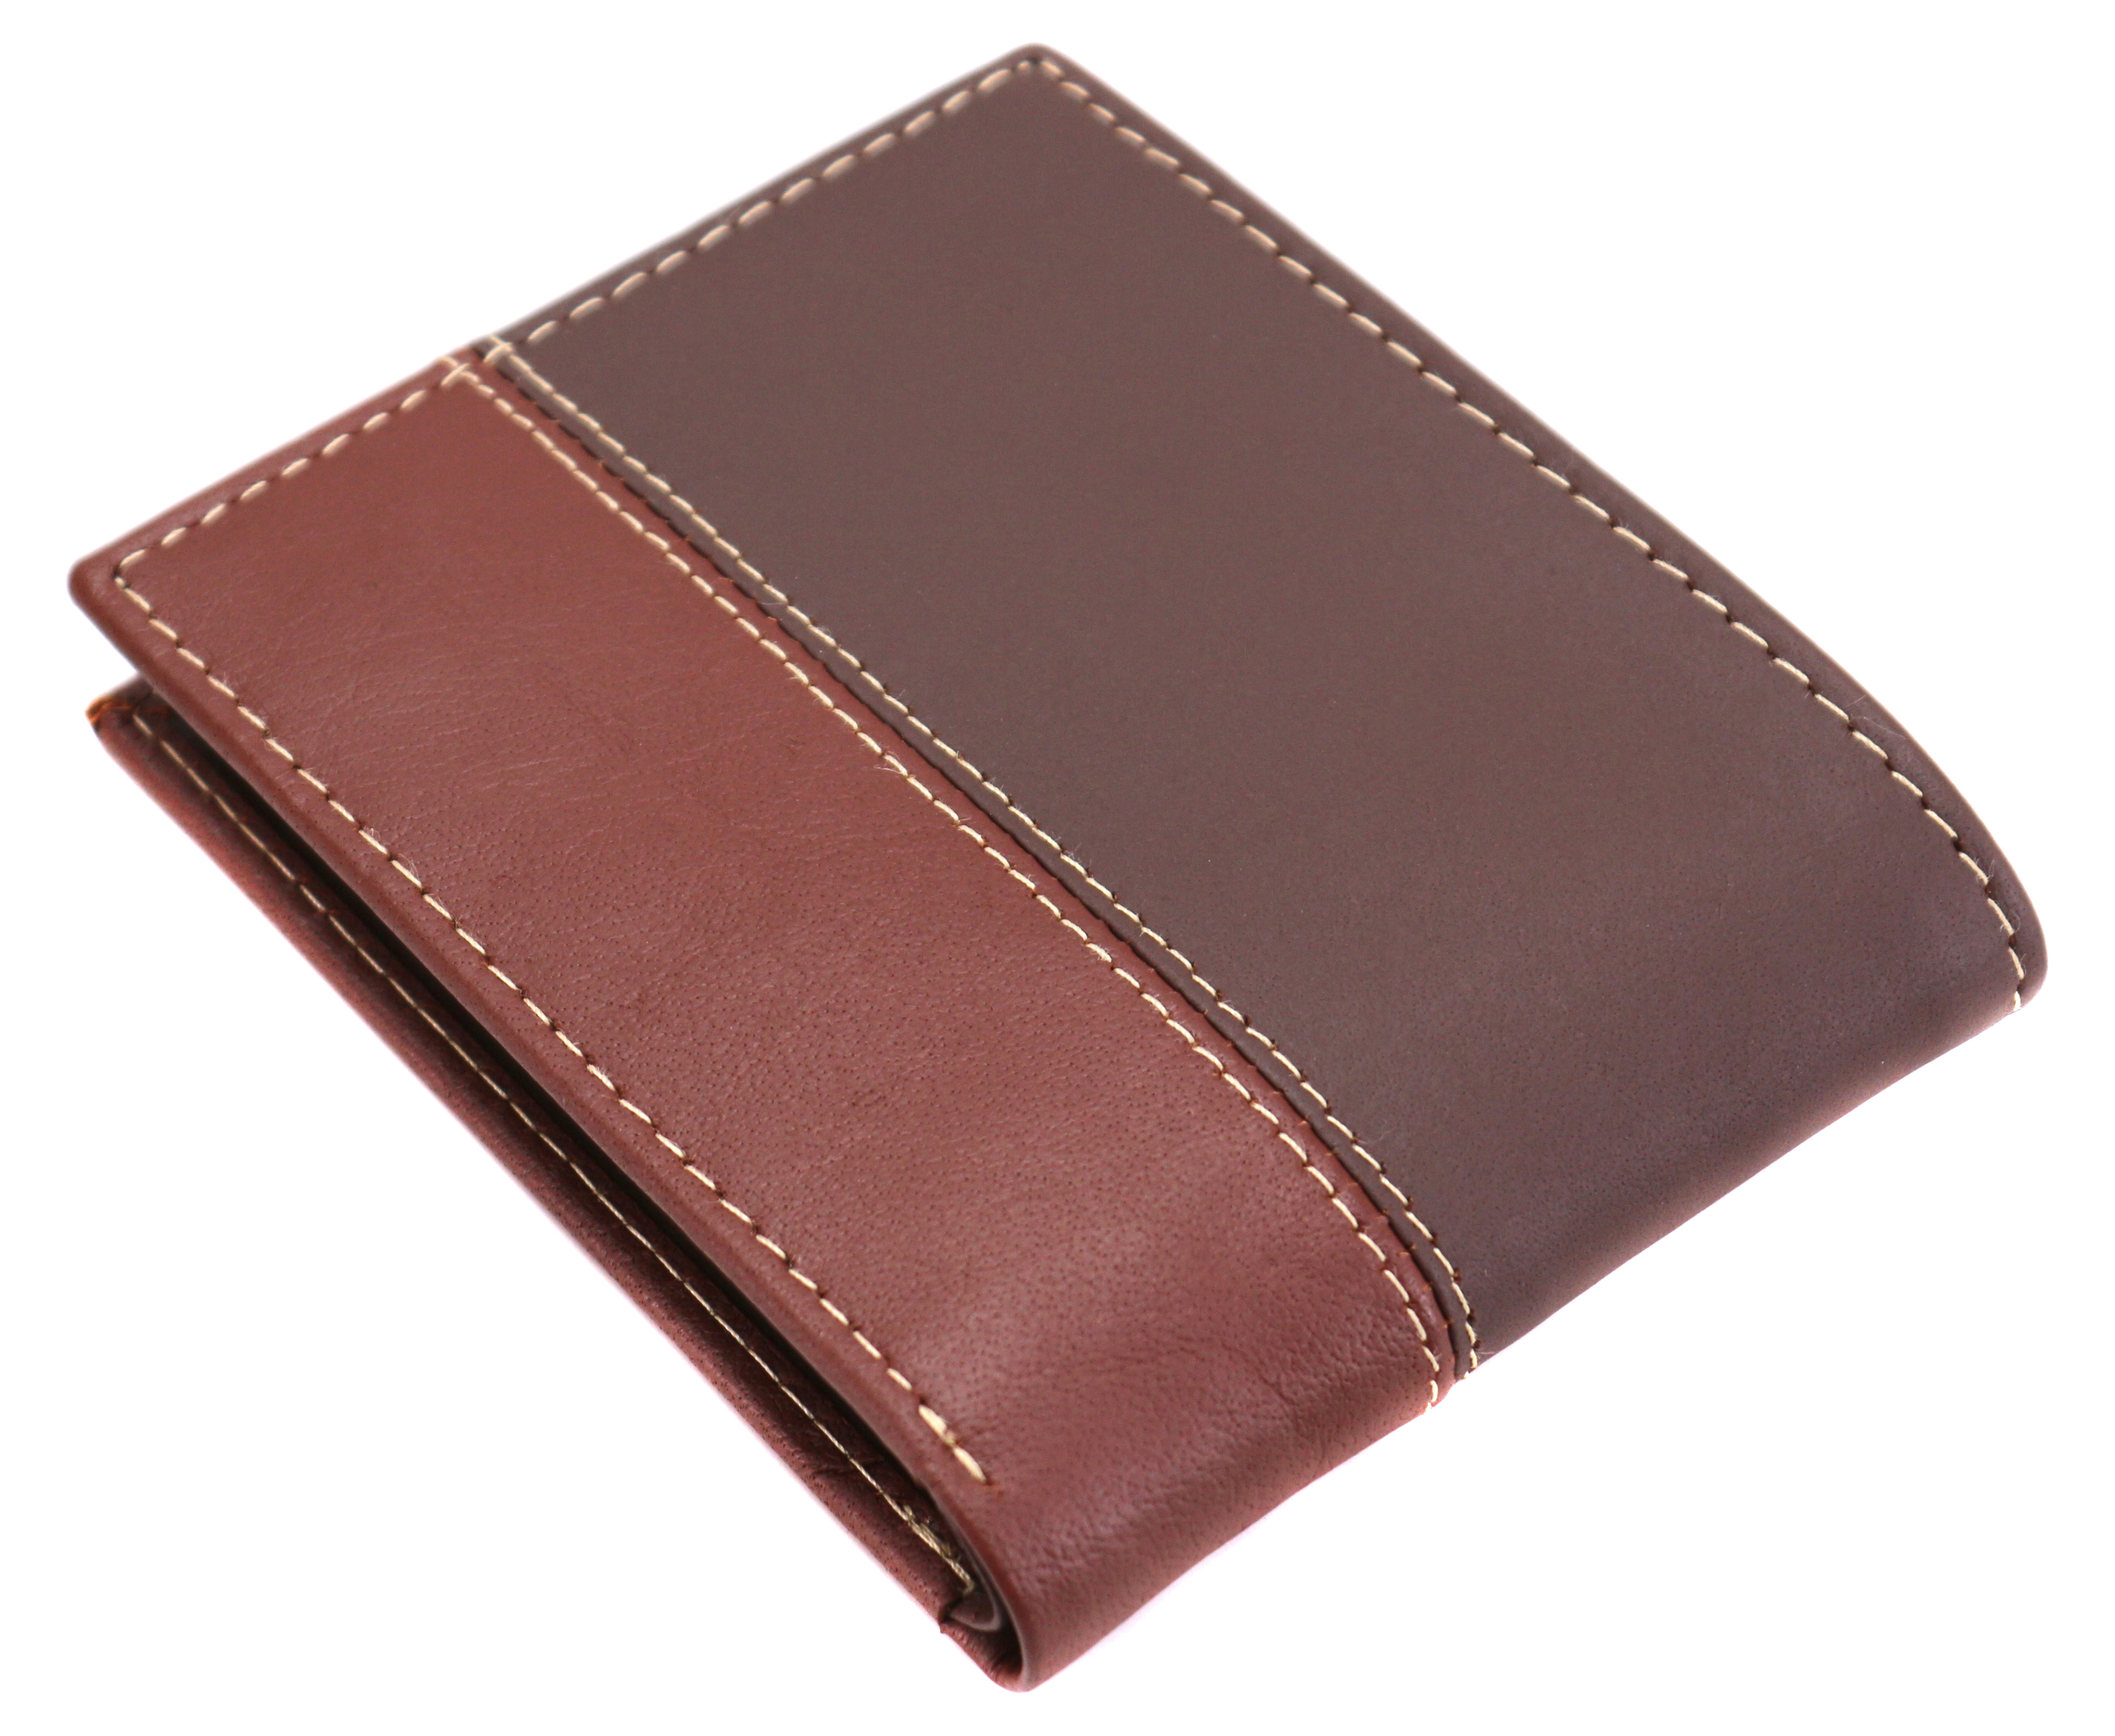 Timberland-Men-039-s-Genuine-Two-Tone-Leather-Credit-Card-Billfold-Commuter-Wallet thumbnail 19